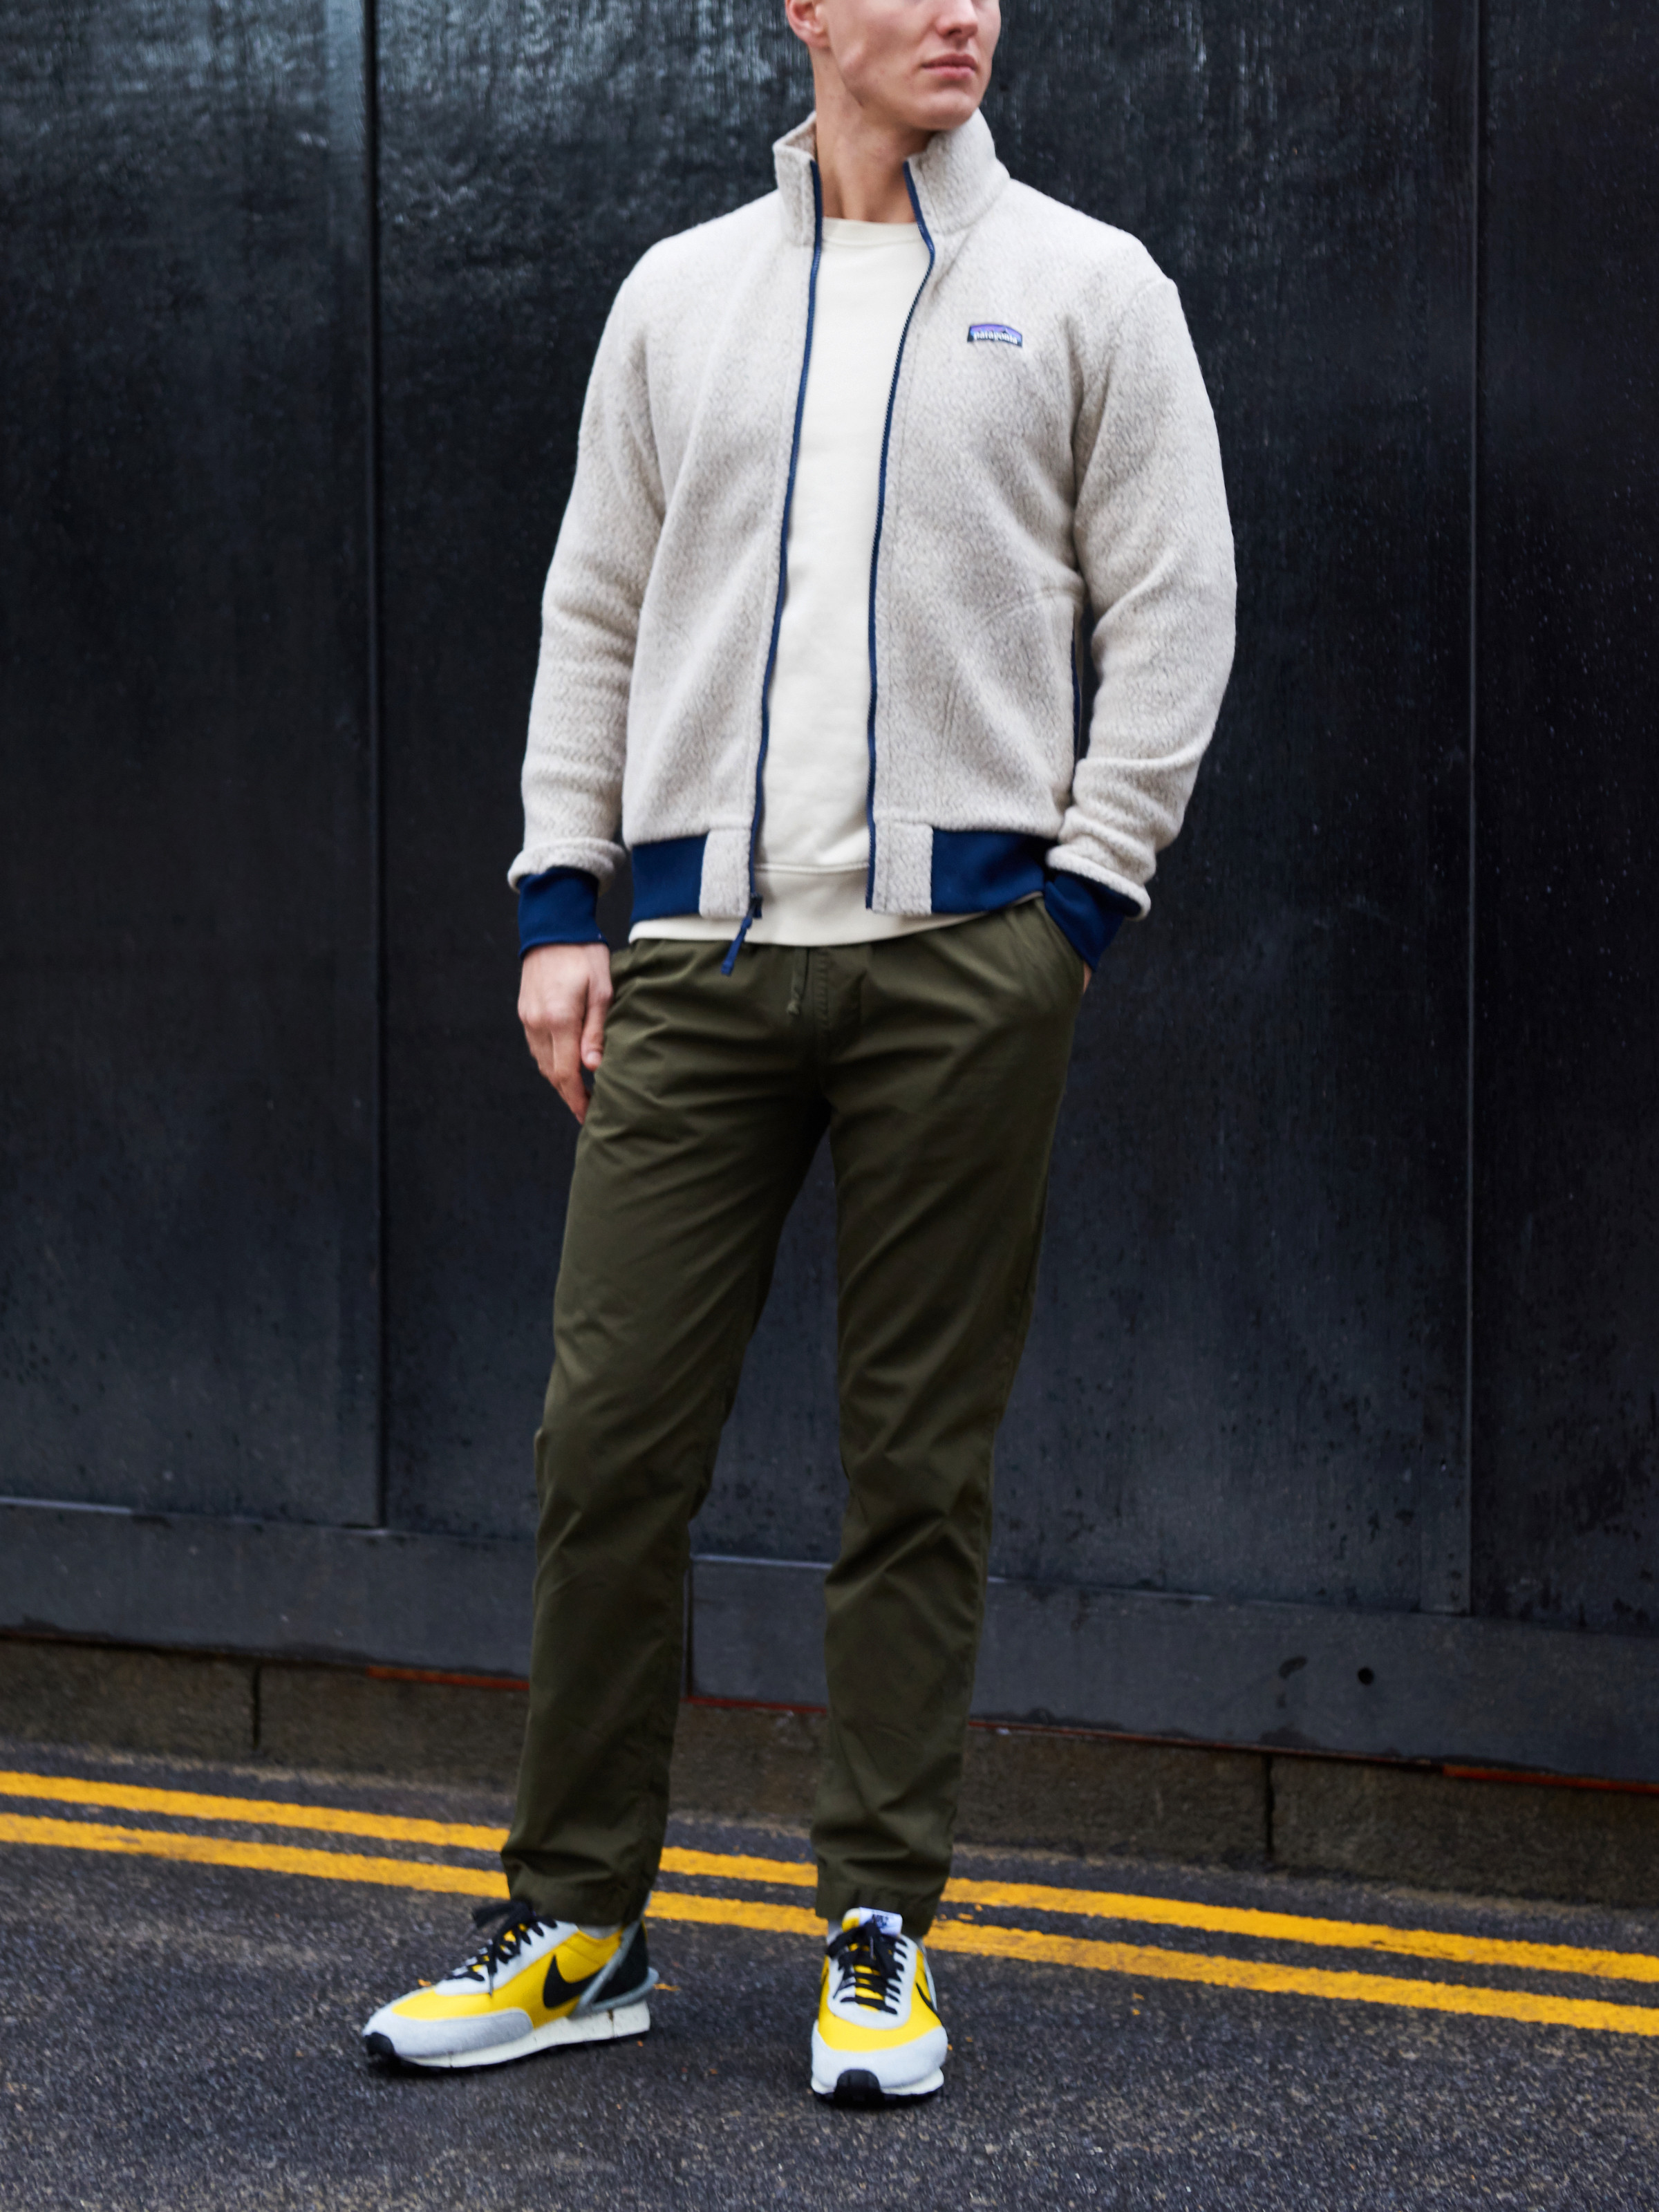 Men's outfit idea for 2021 with neutral wool jacket, bold-colored sweatshirt, colored chinos, bright sneakers. Suitable for fall and winter.